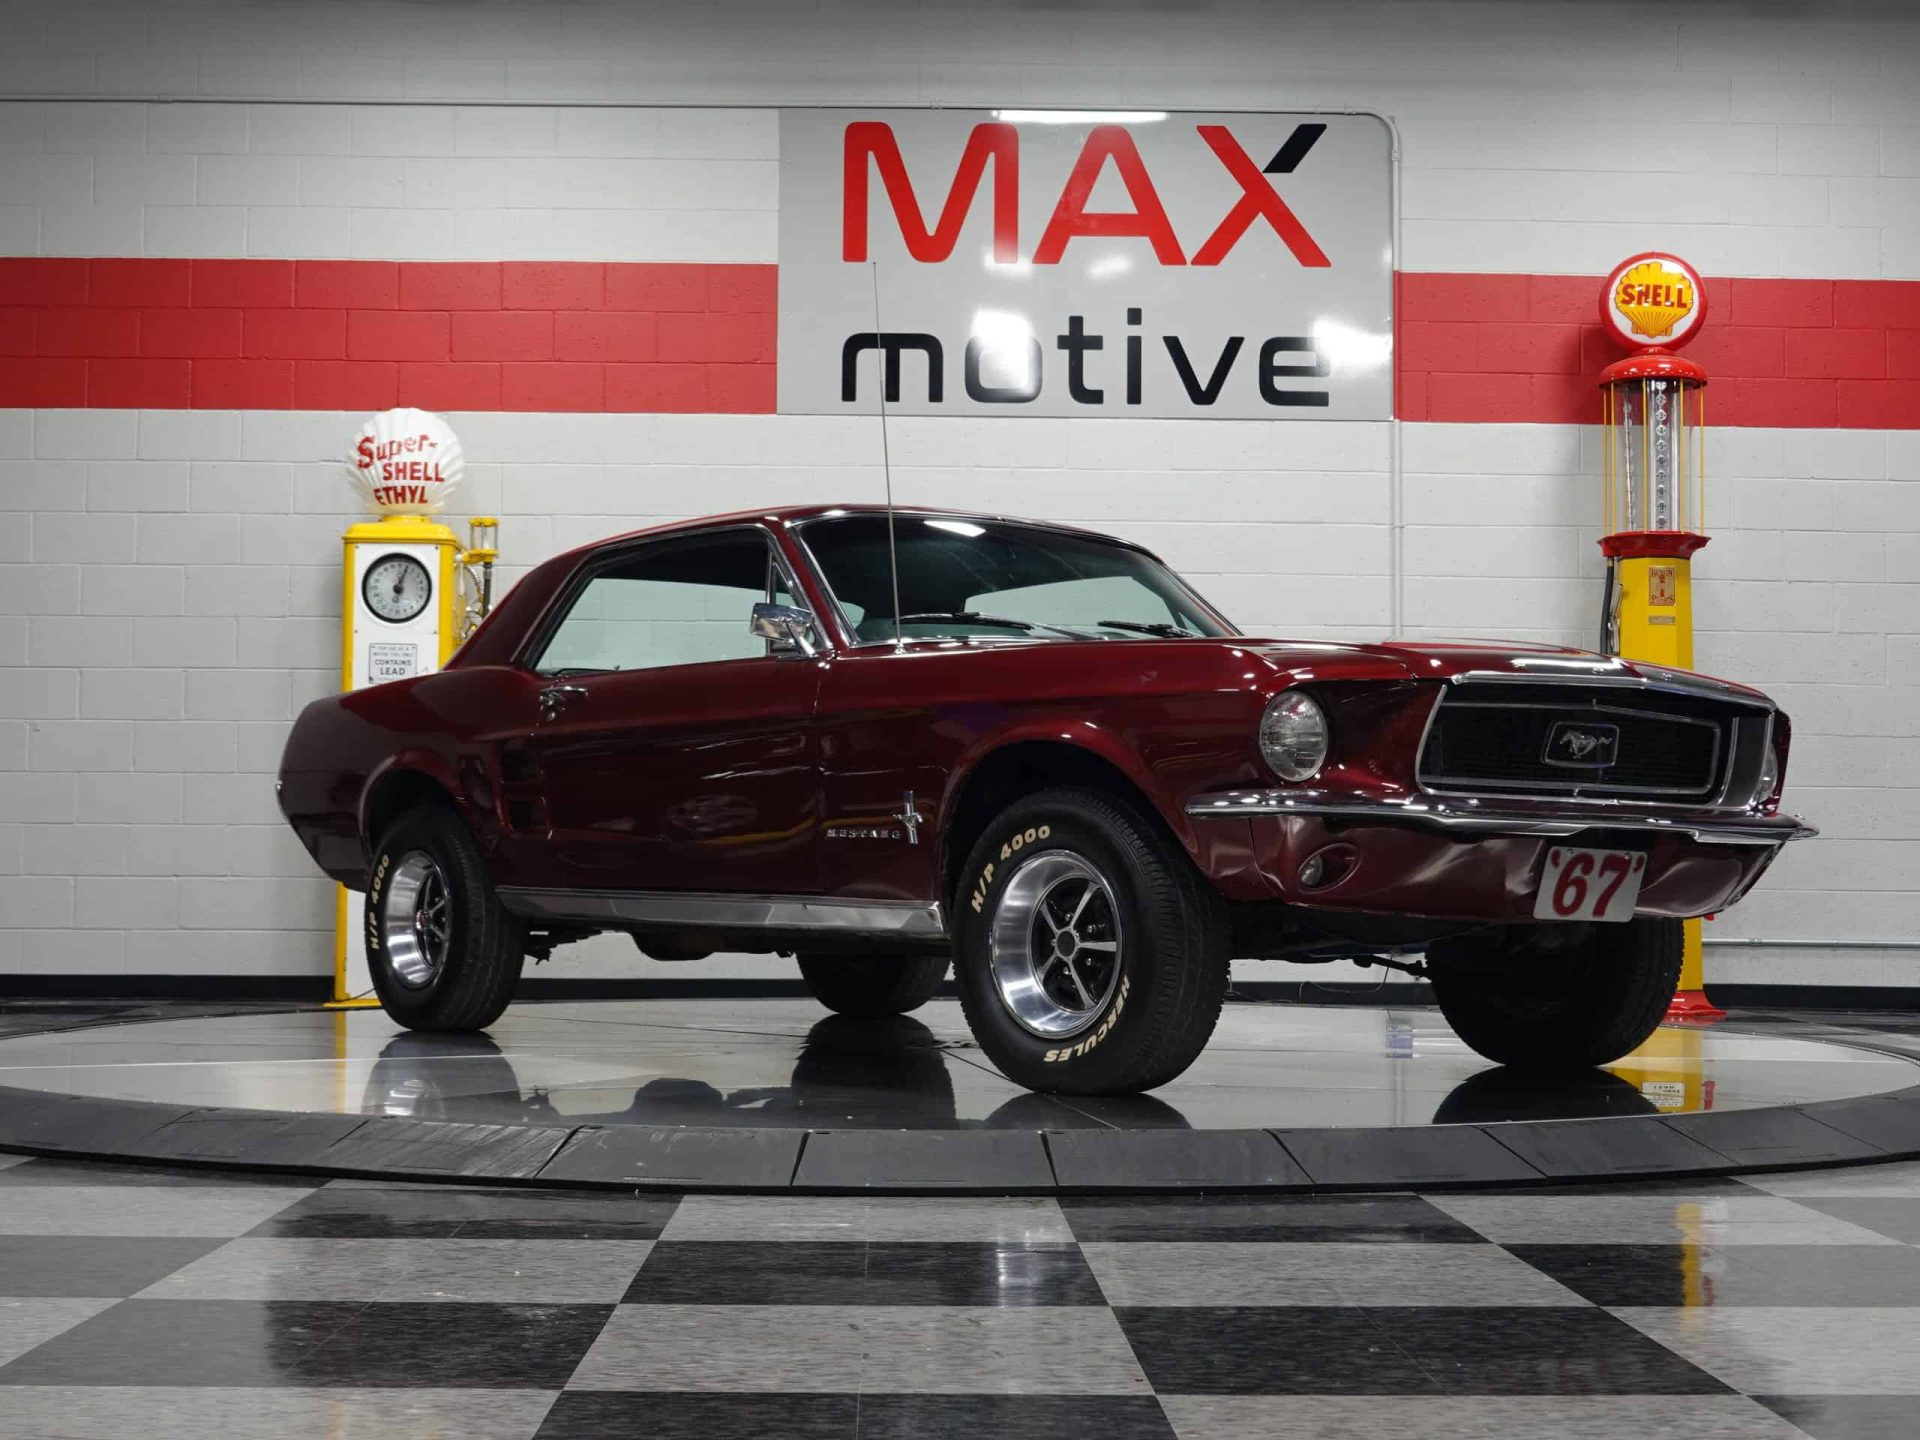 1967 Ford Mustang 2-Door Coupe - V0728